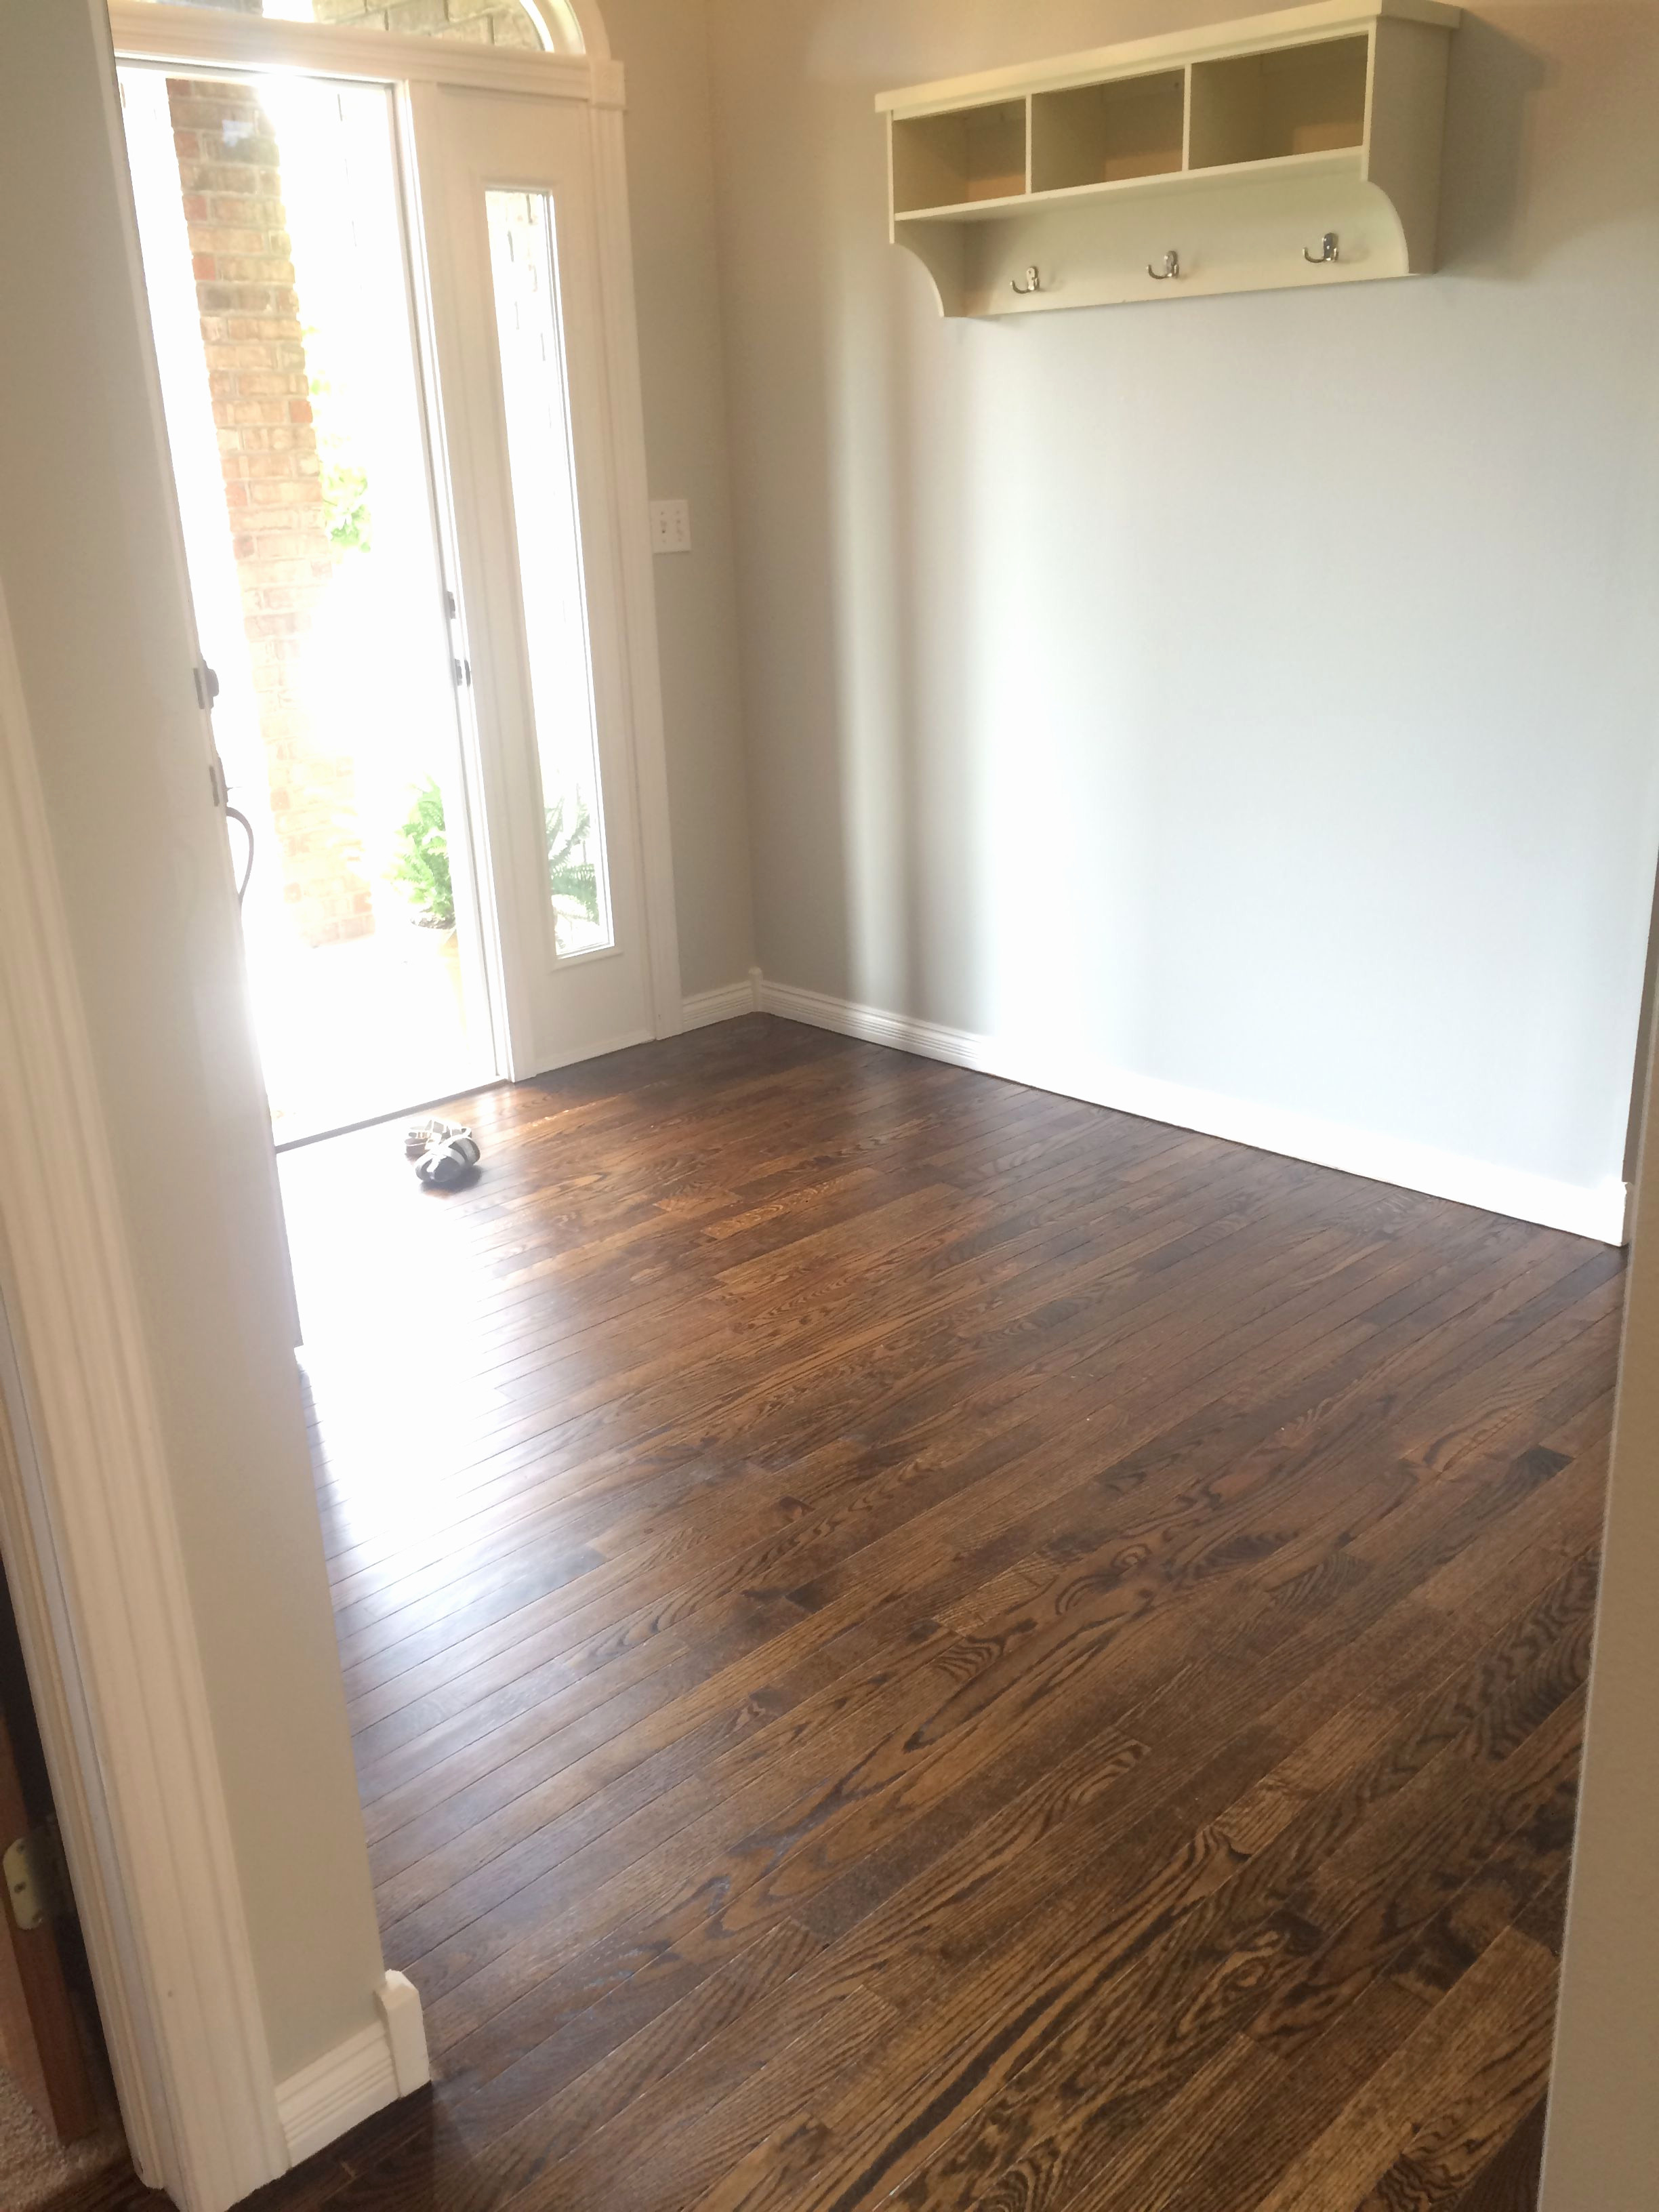 Refinishing Hardwood Floors Yourself Of Diy Refinish Hardwood Floors 50 Best Refinished Hardwood Floors with Diy Refinish Hardwood Floors 50 Best Refinished Hardwood Floors before and after Graphics 50